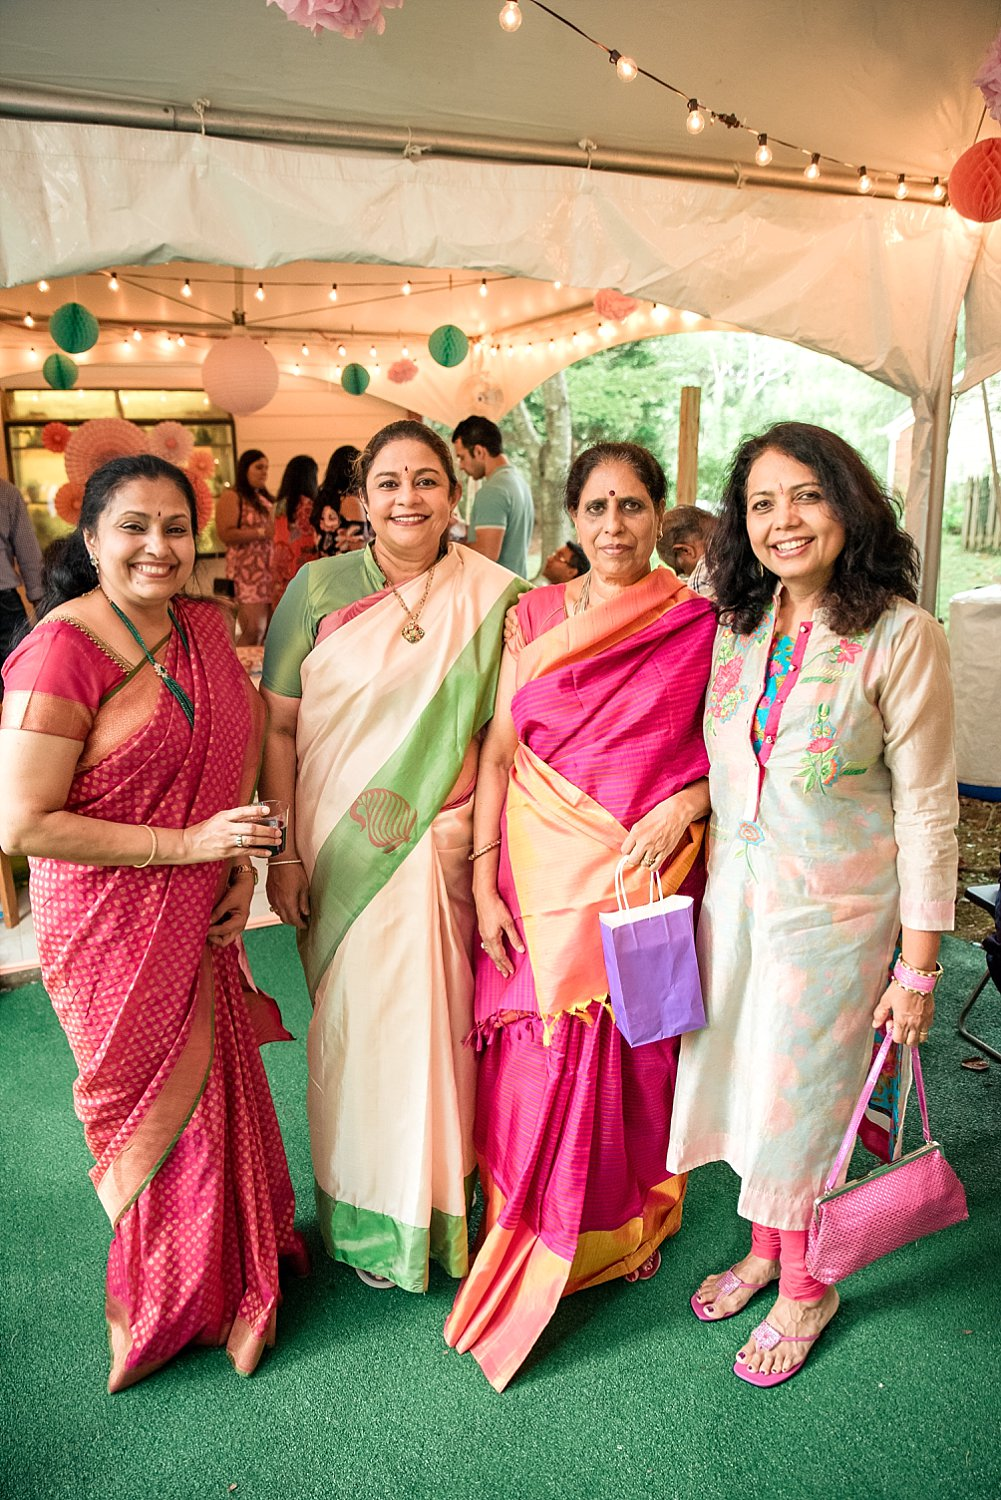 4 women in Saris at baby shower in Roswell, GA